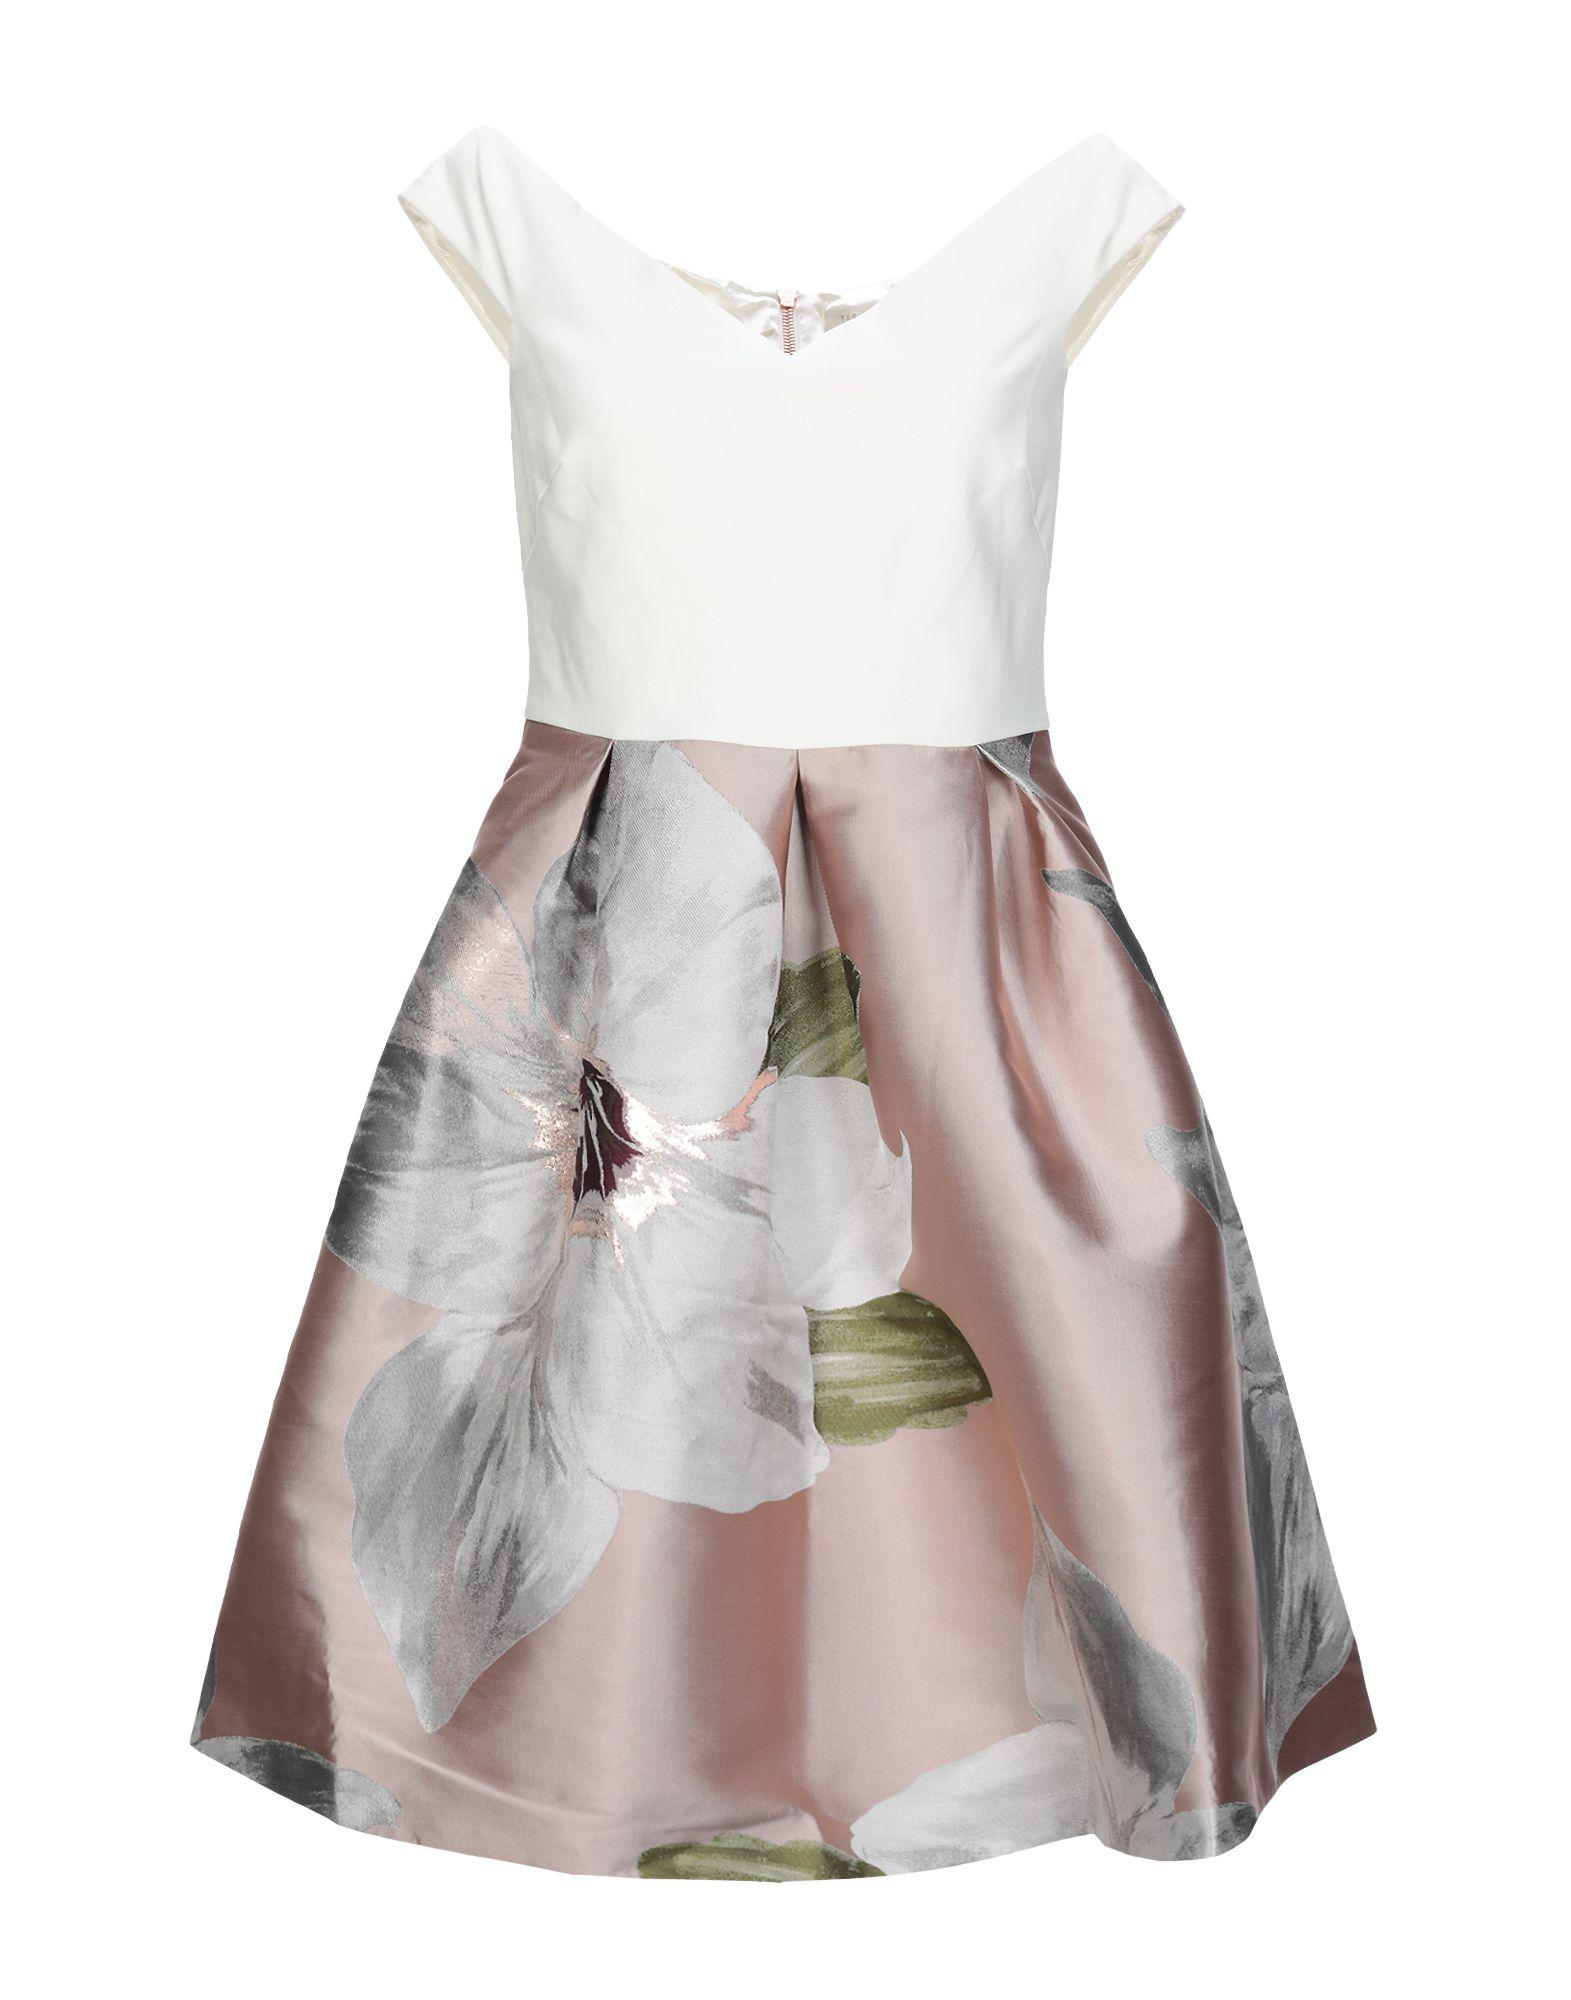 b51152fe0 Lyst - Ted Baker Short Dress in Pink